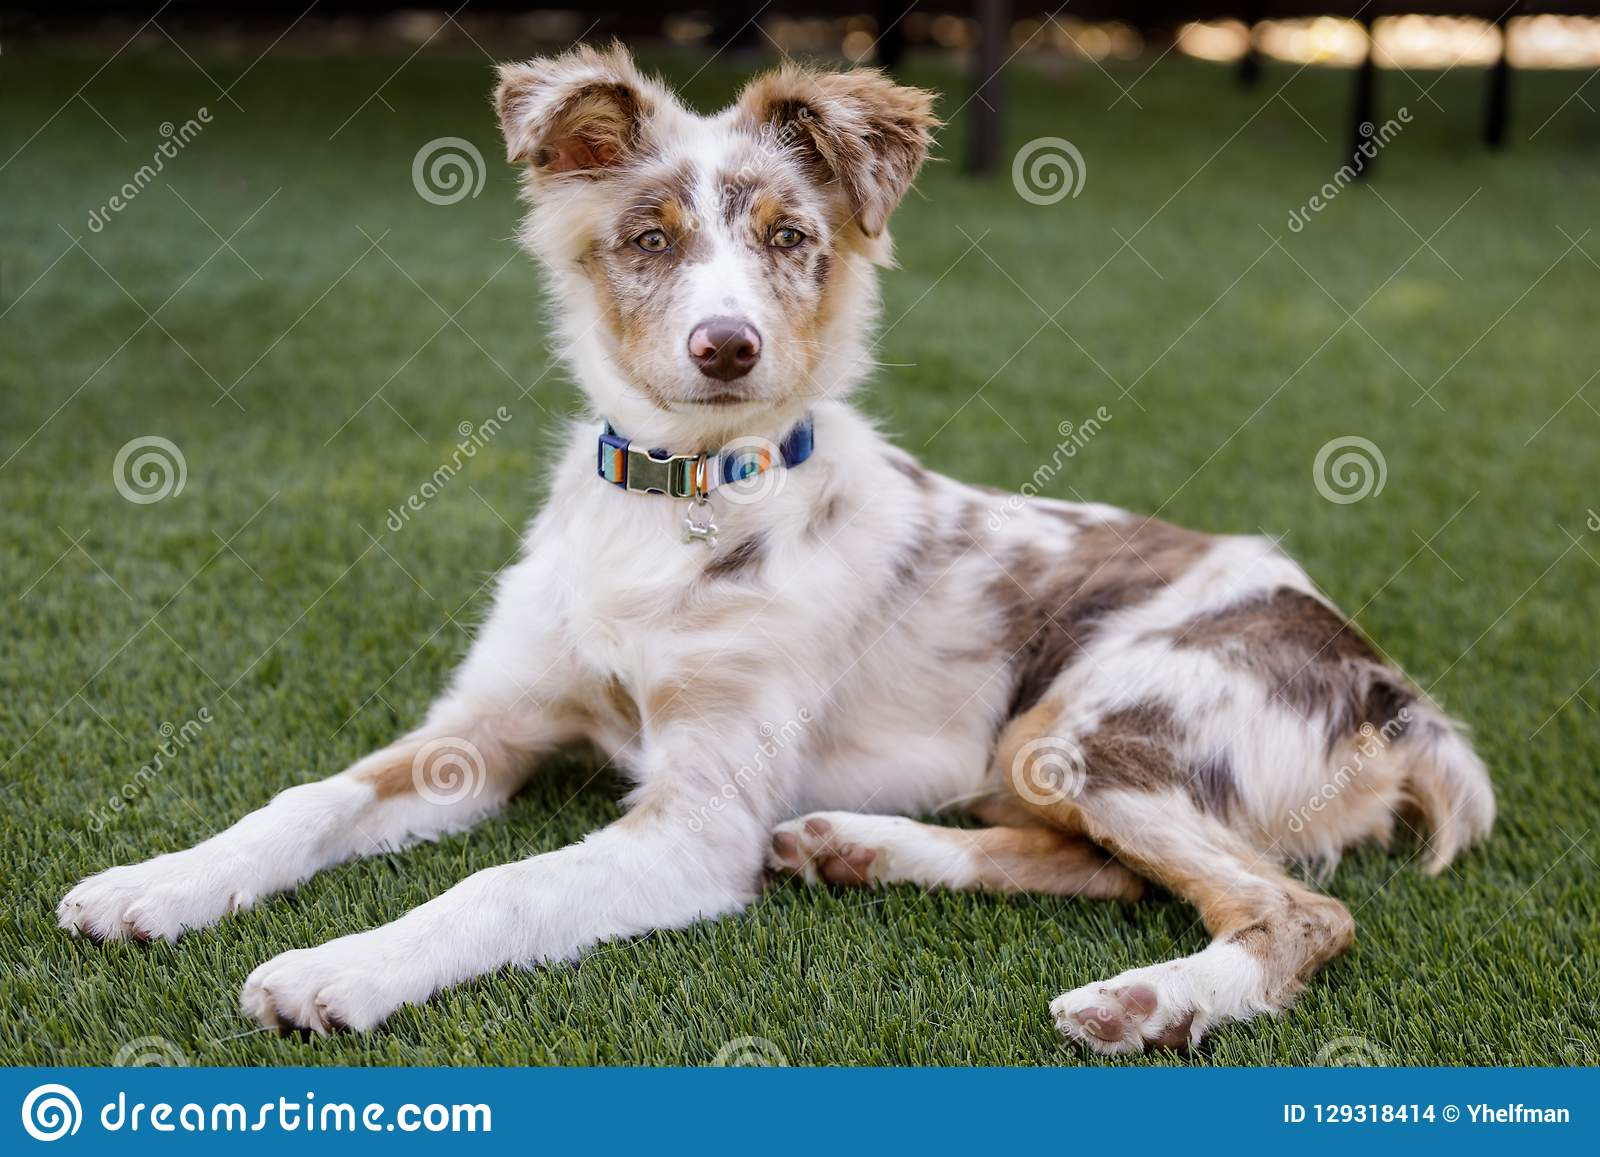 Red Merle Australian Shepherd Puppy Lying Down And Looking At Camera Stock Photo Image Of Canine California 129318414